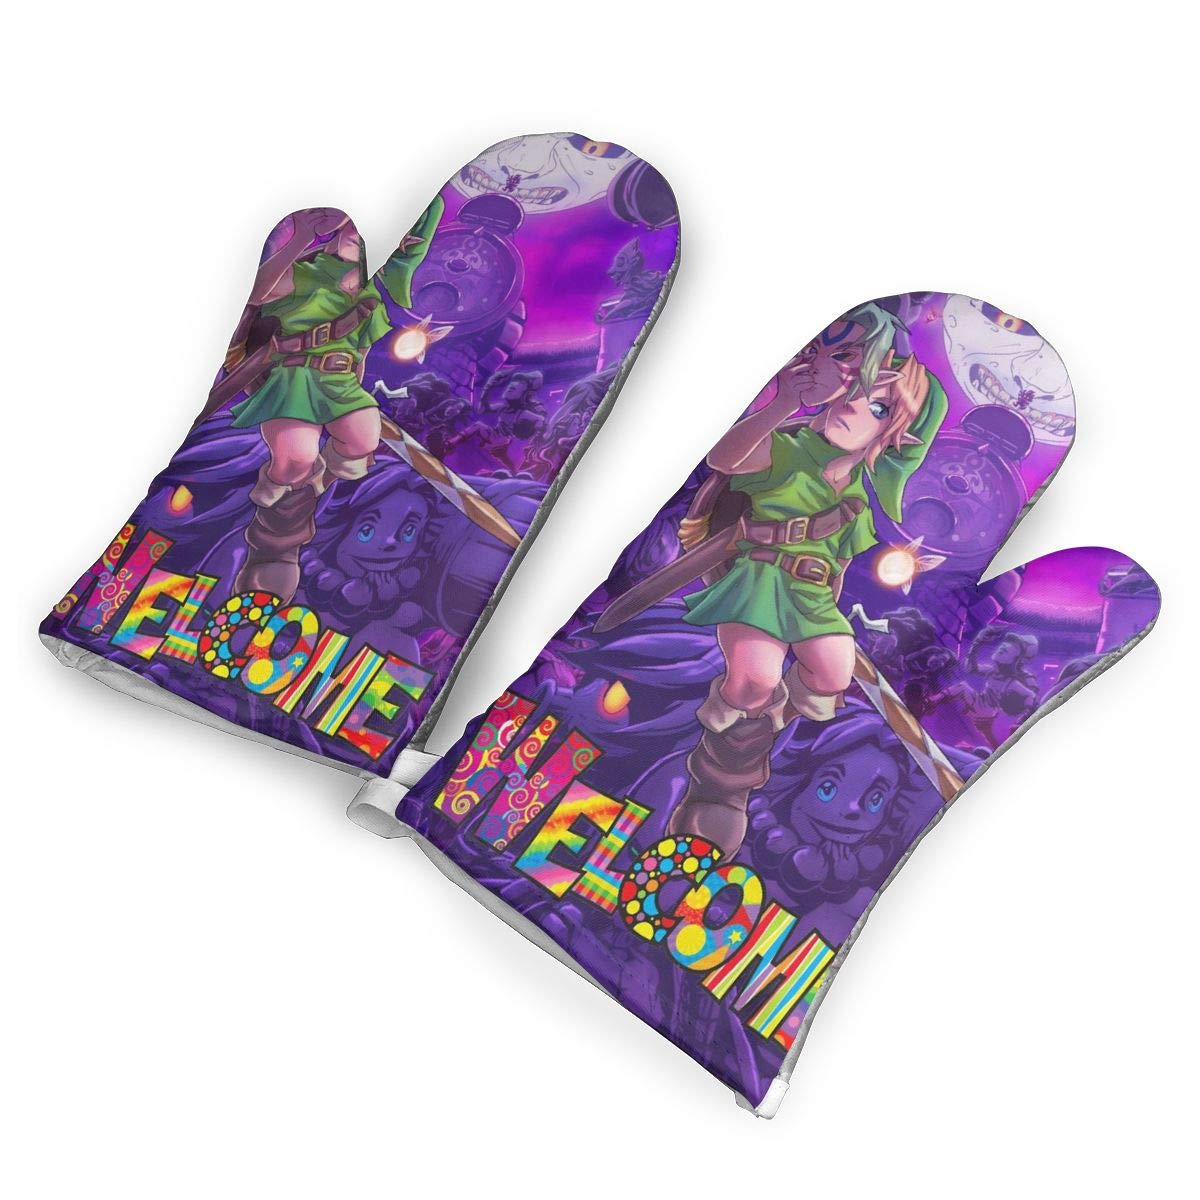 not Legend of Zelda Majoras Mask Art Oven Mitts with Polyester Fabric Printed Pattern,1 Pair of Heat Resistant Oven Gloves for Cooking,Baking,Grilling,Barbecue Potholders